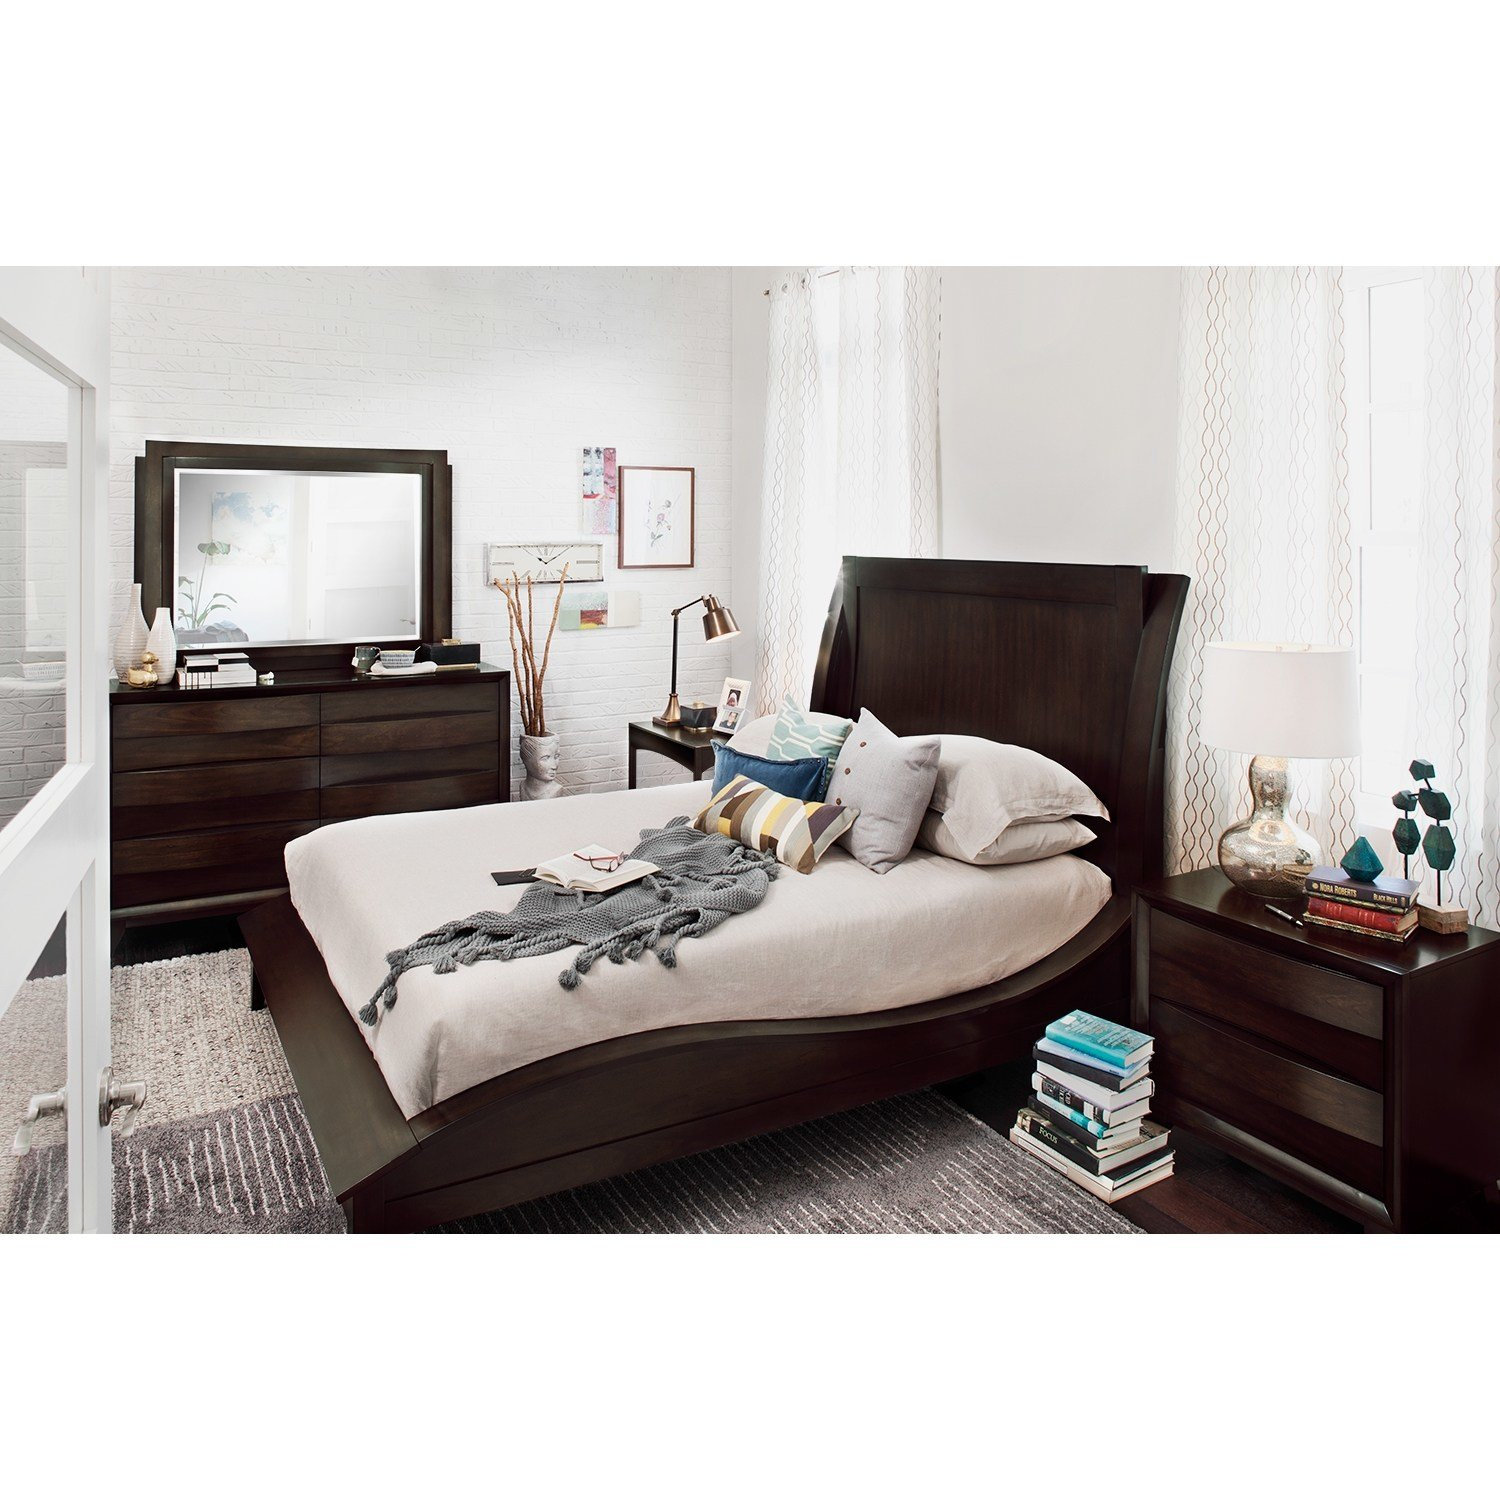 Best Bedroom Value City Bedroom Sets For Stylish Bedroom Decor With Pictures